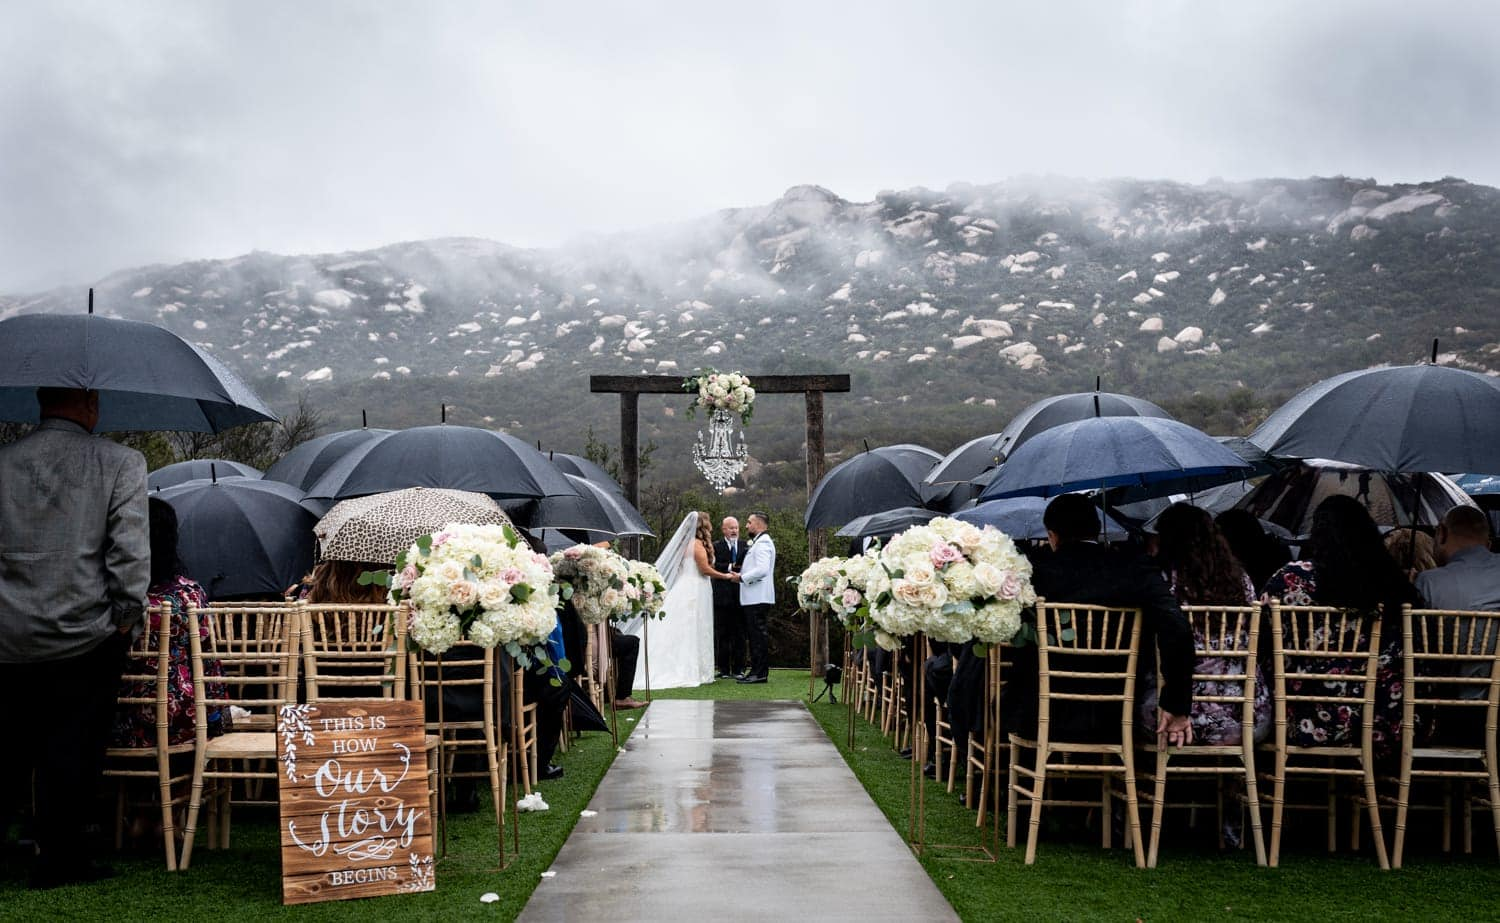 Wedding ceremony in the rain in San Diego, CA.